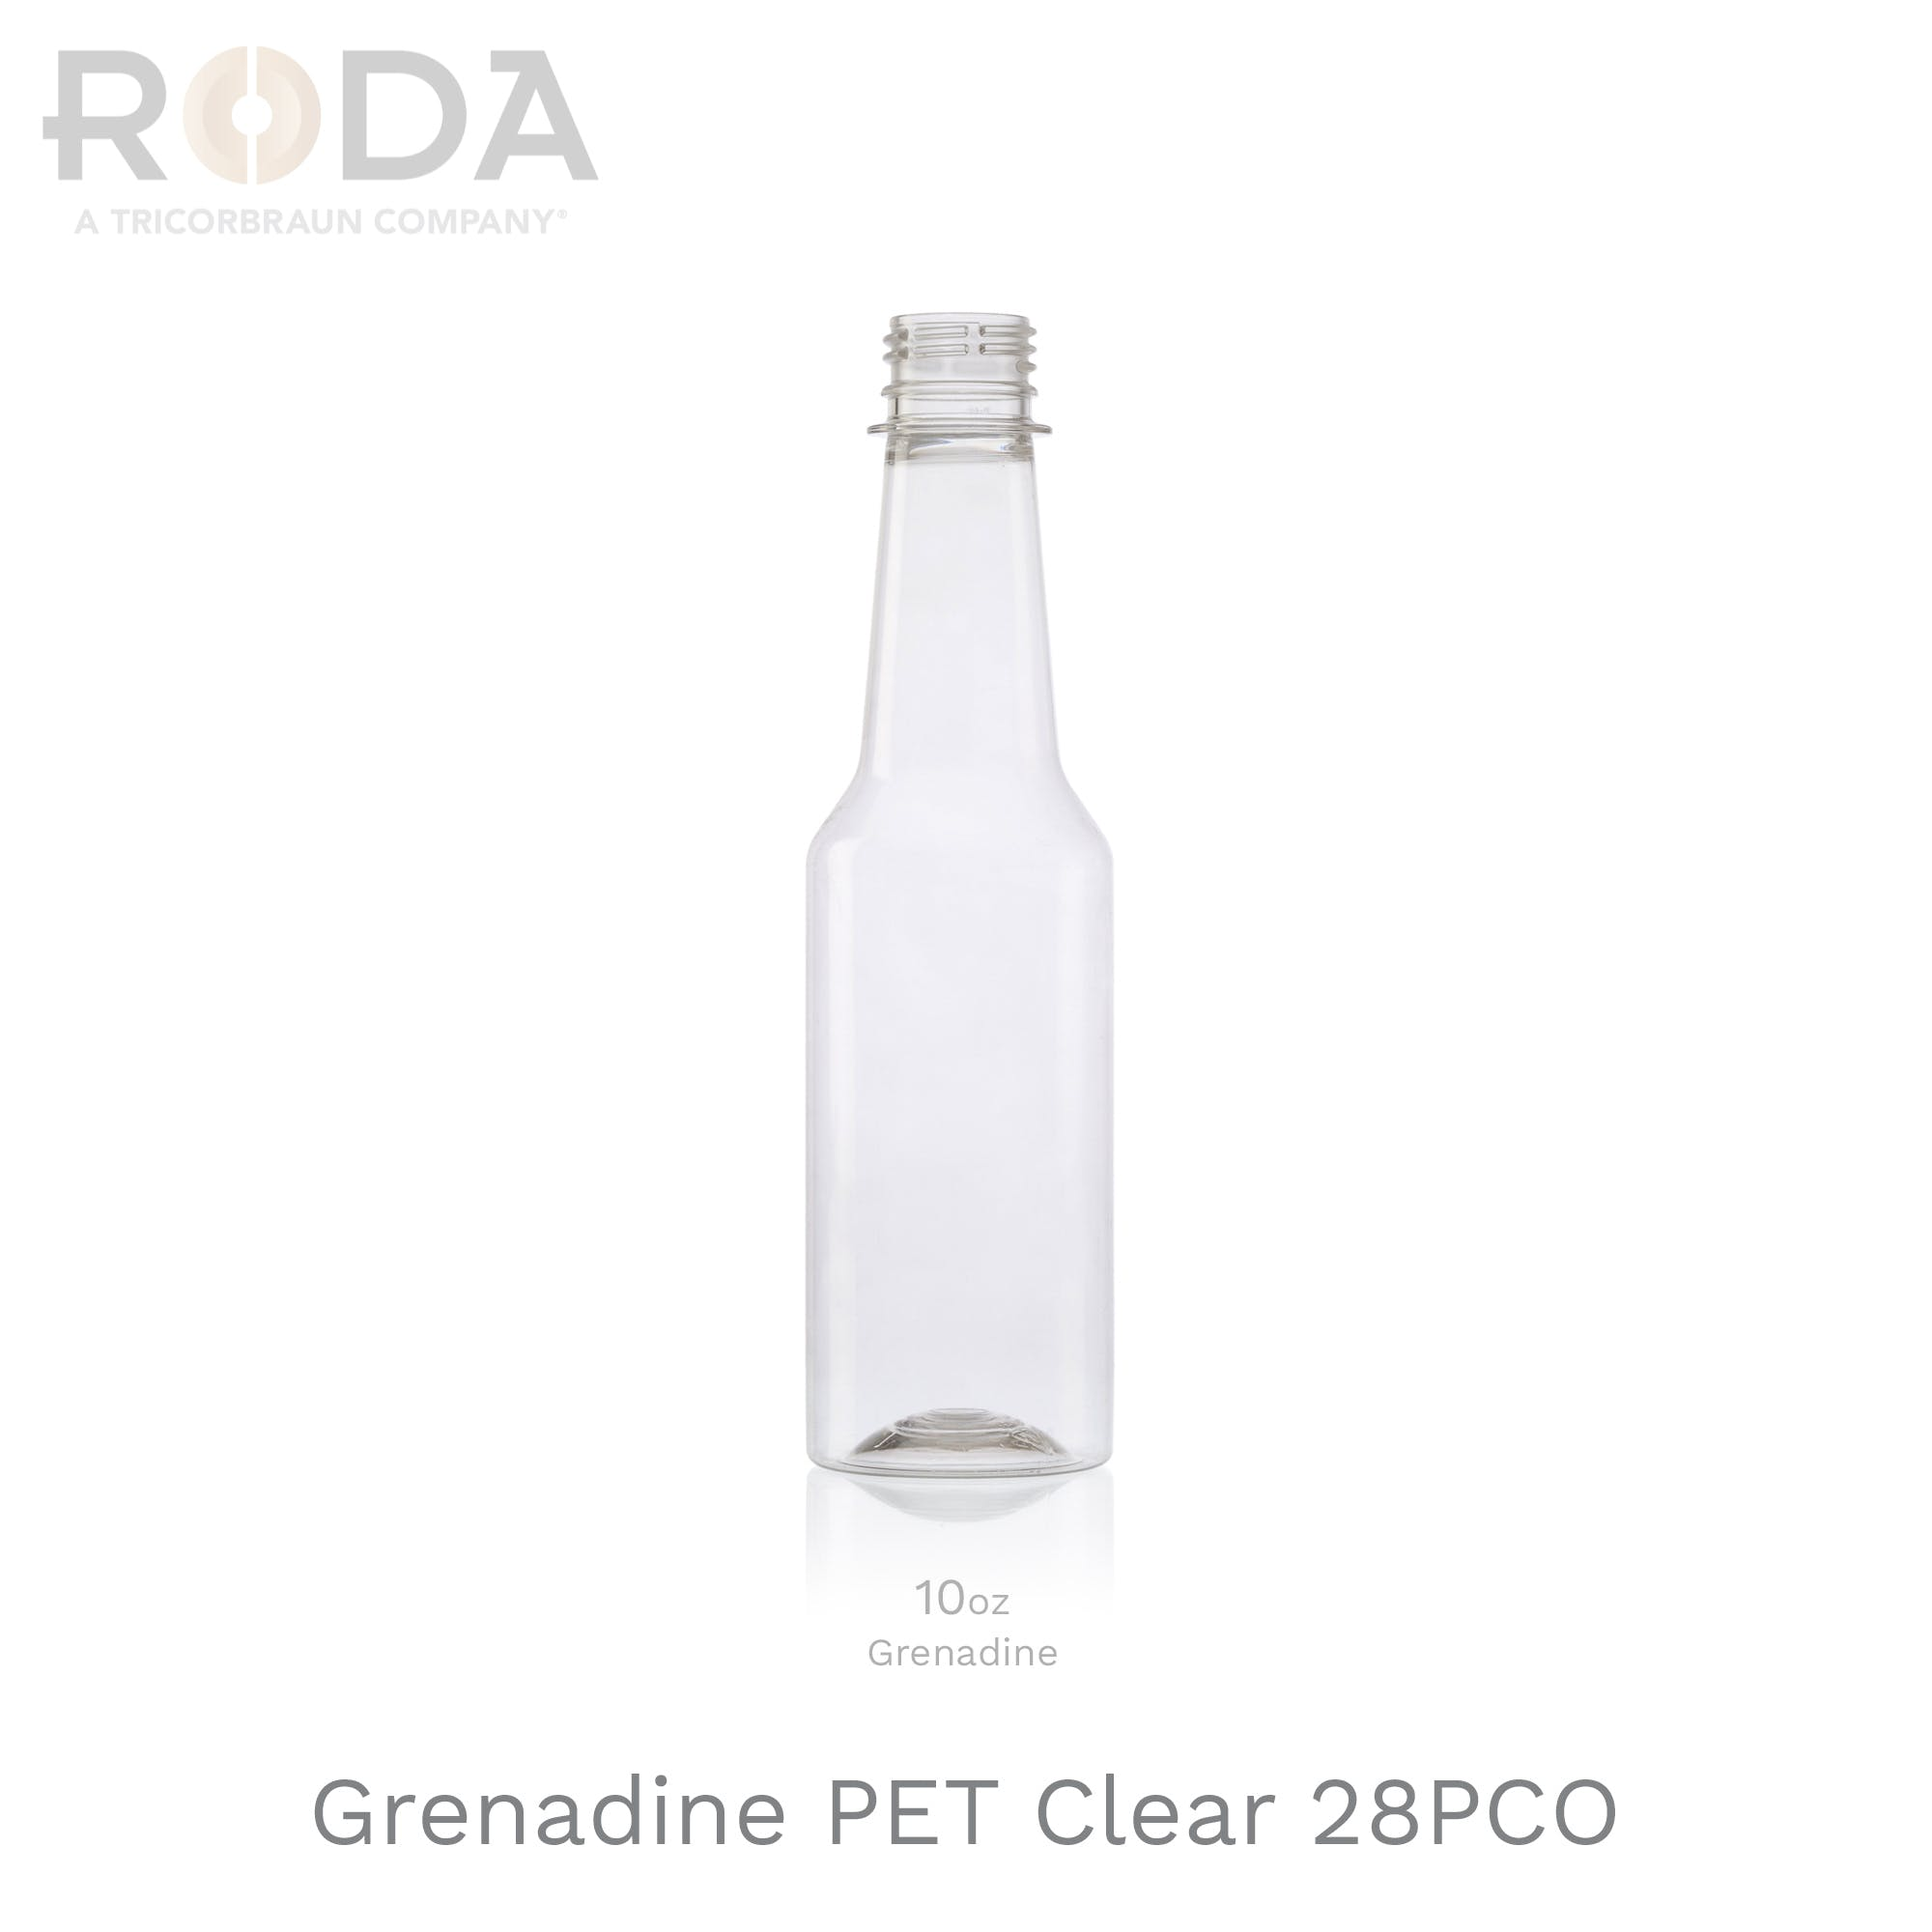 Grenadine PET Clear 28PCO